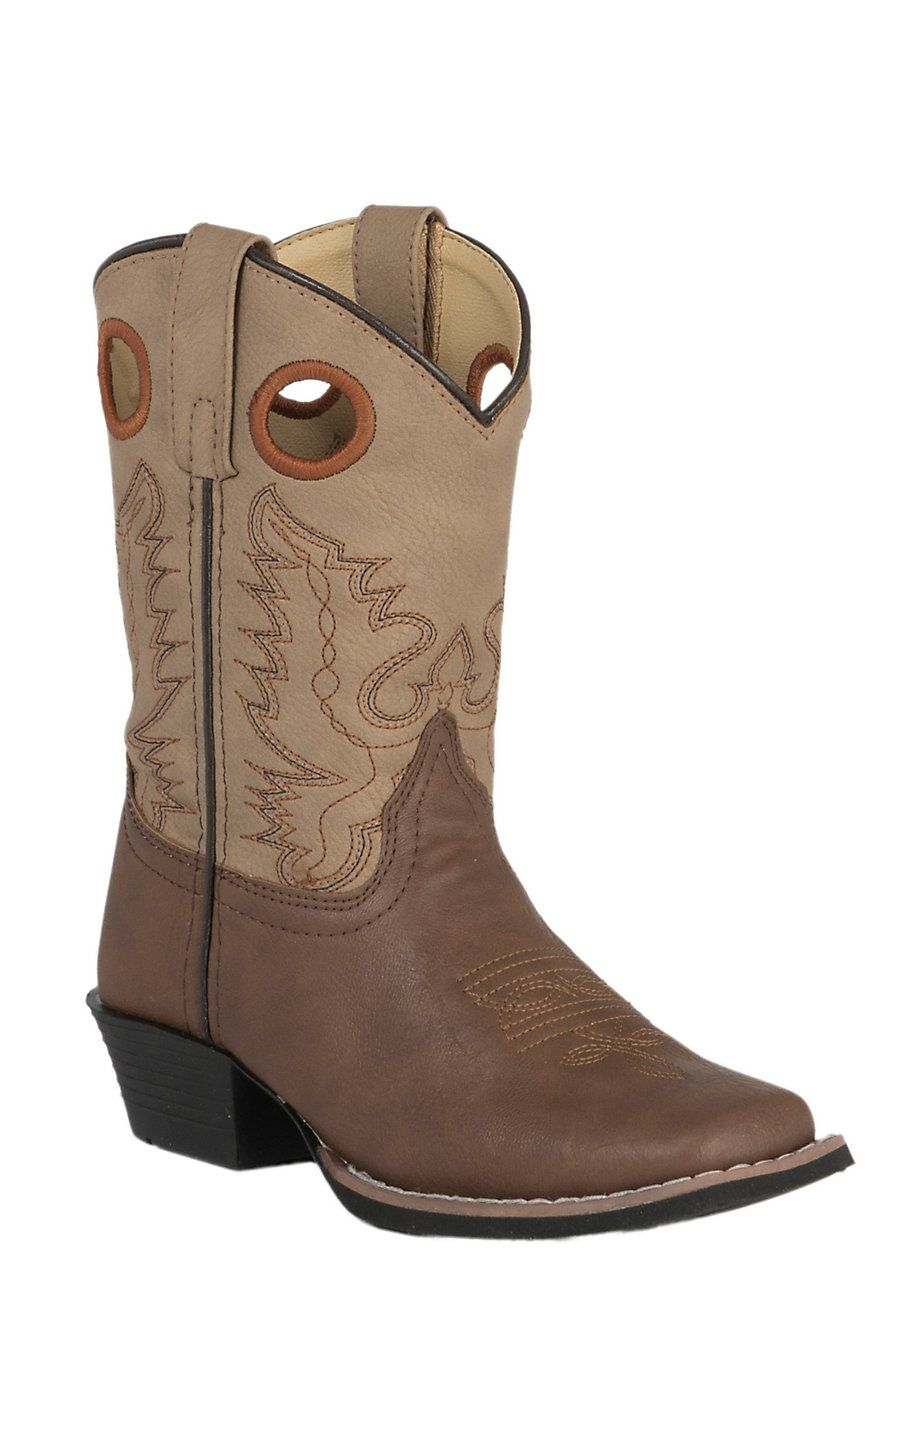 Vintage Cowboy Boots Beautiful pair of vintage denim ...  |Cowboy Boots With Colored Tops